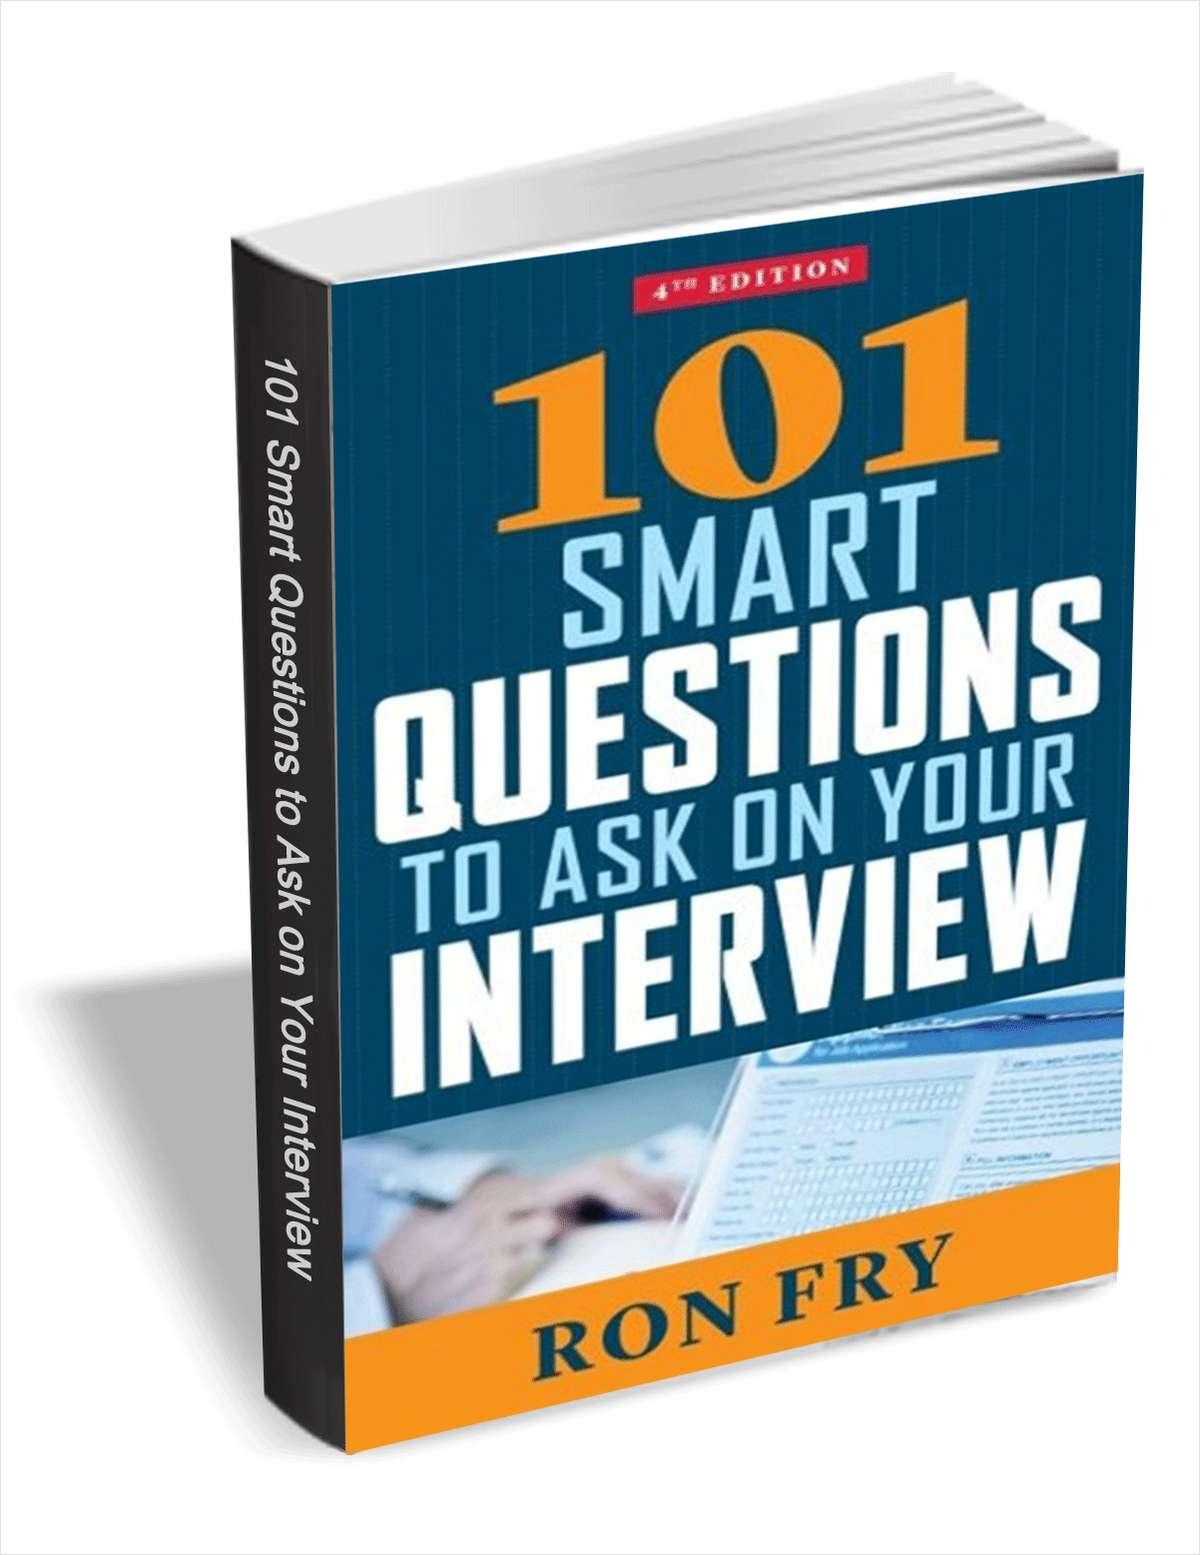 101 Smart Questions to Ask on Your Interview, 4th Edition ($10 Value) FREE For a Limited Time